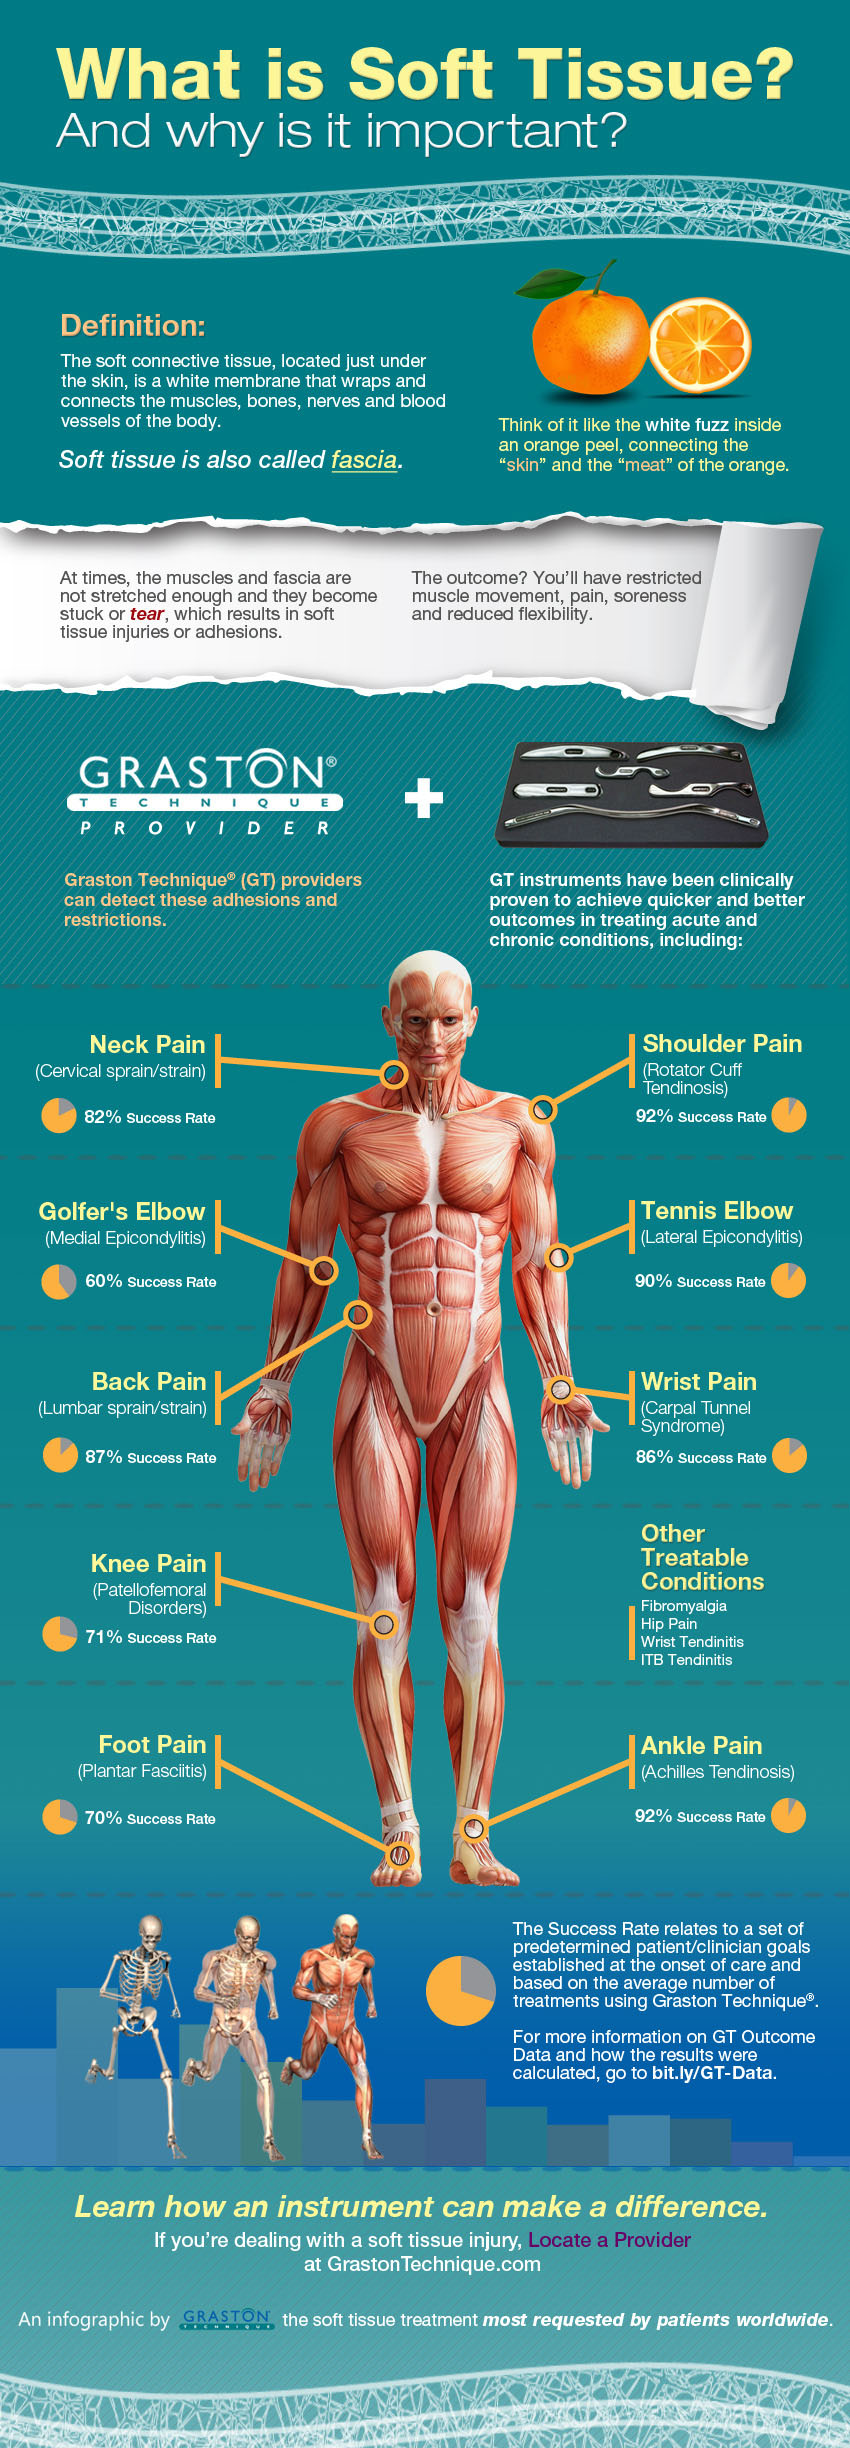 [Infographic] What is Soft Tissue?